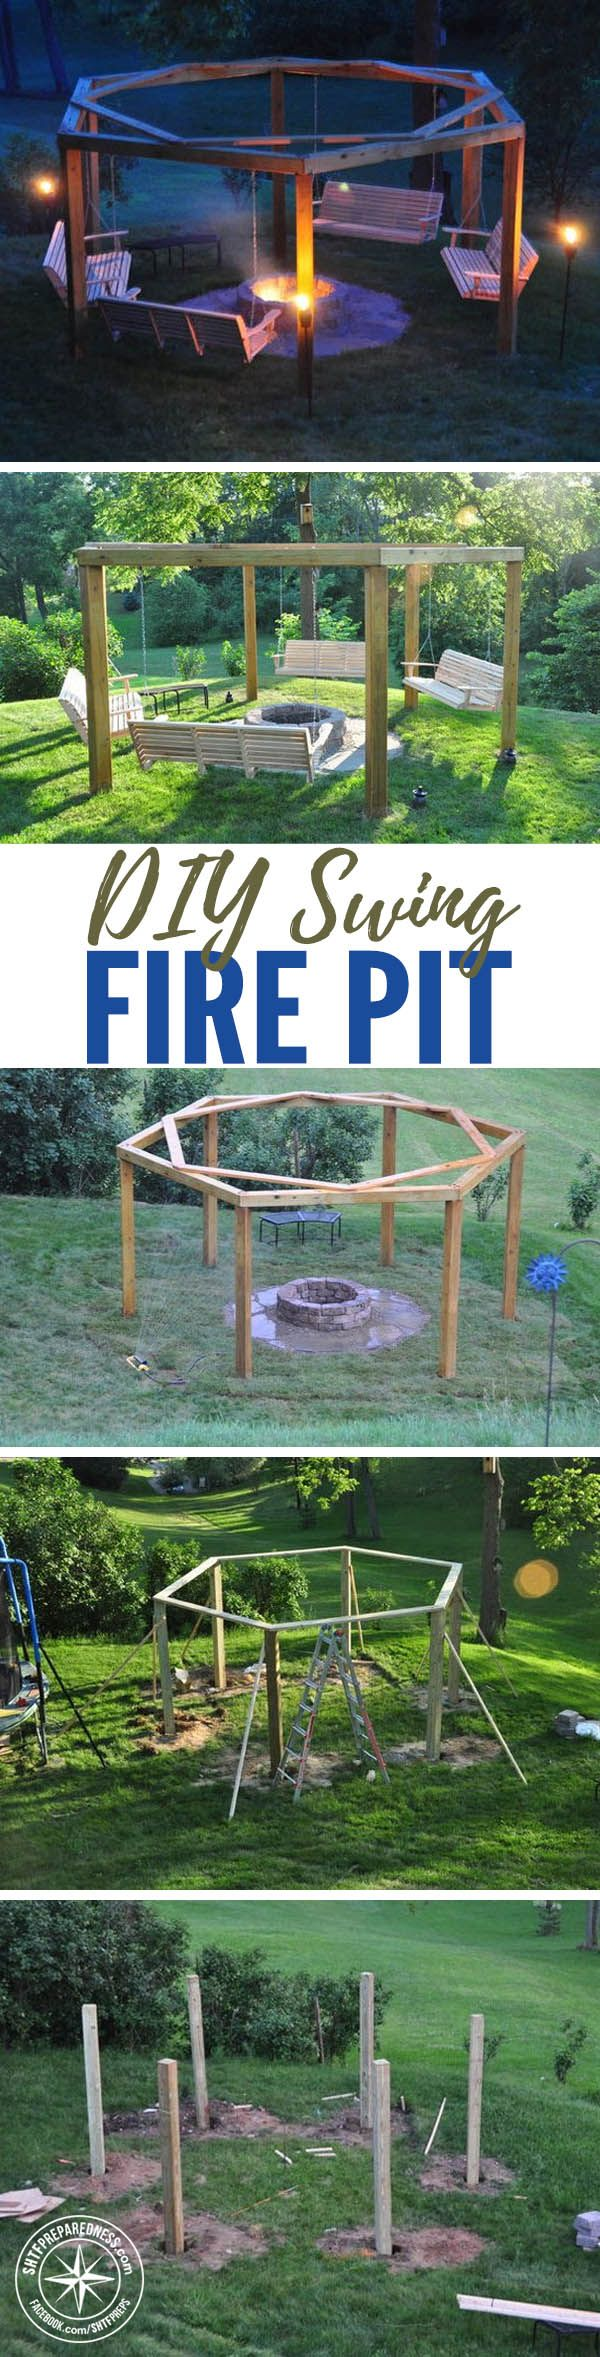 5 Swing Fire Pit Best 25 Best Fire Pit Ideas On Pinterest Outdoor Fire Pits